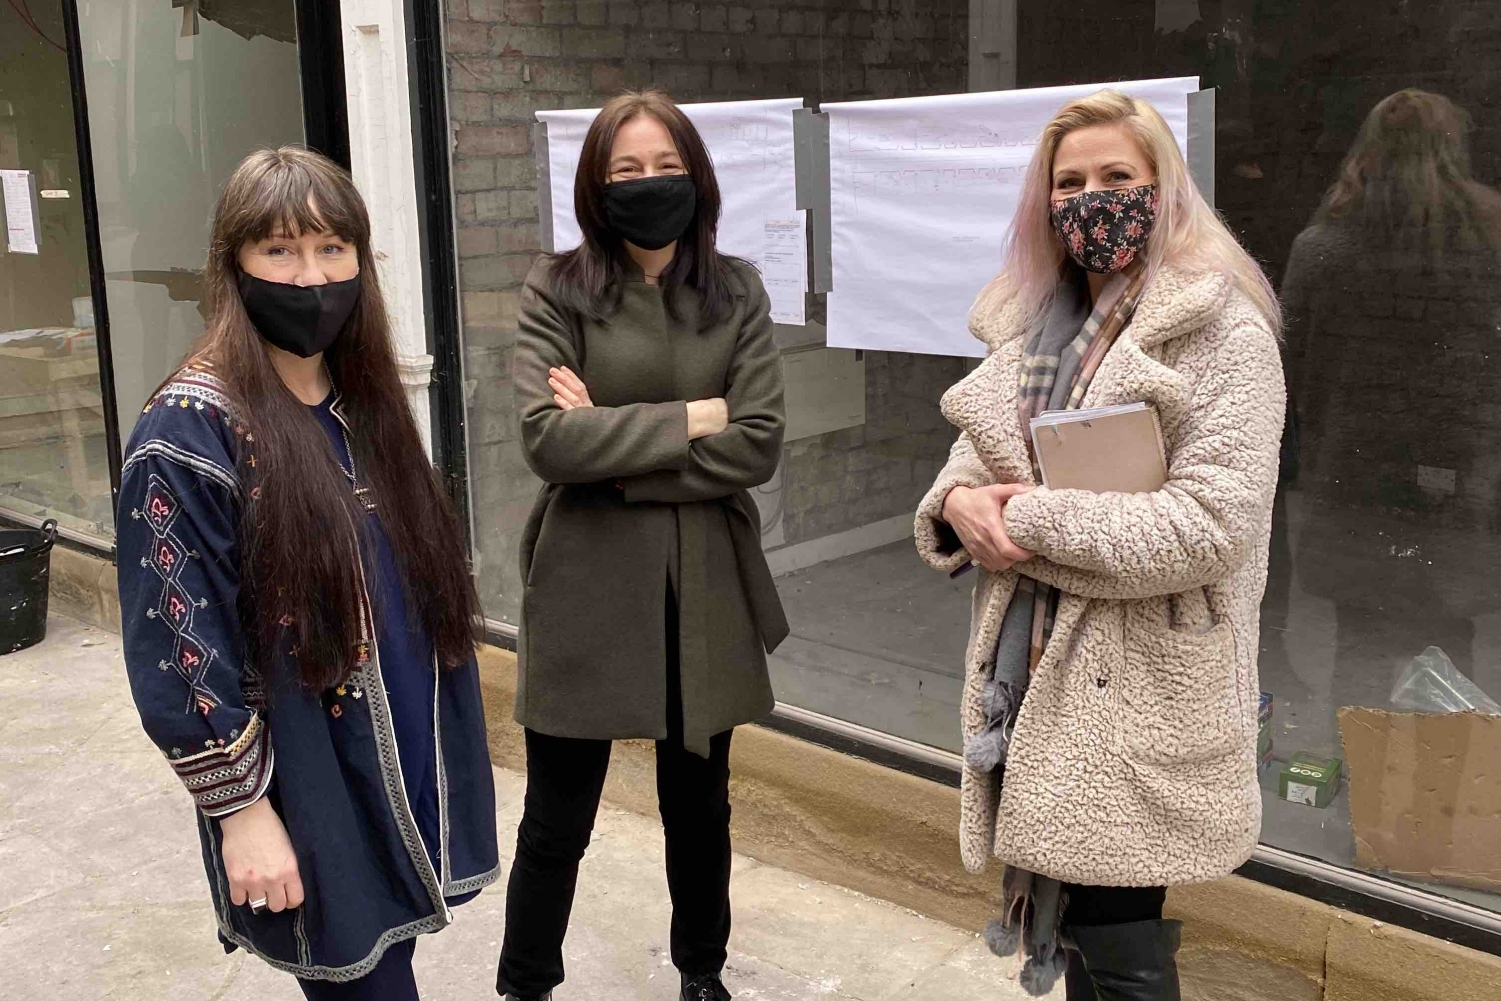 Feb '21. Emma Noble @thebombzz, handmade bath bombs, talking to Natalie Liddle and Sarah Barnes from the Steering Group about renting a unit on Dewsbury Arcade